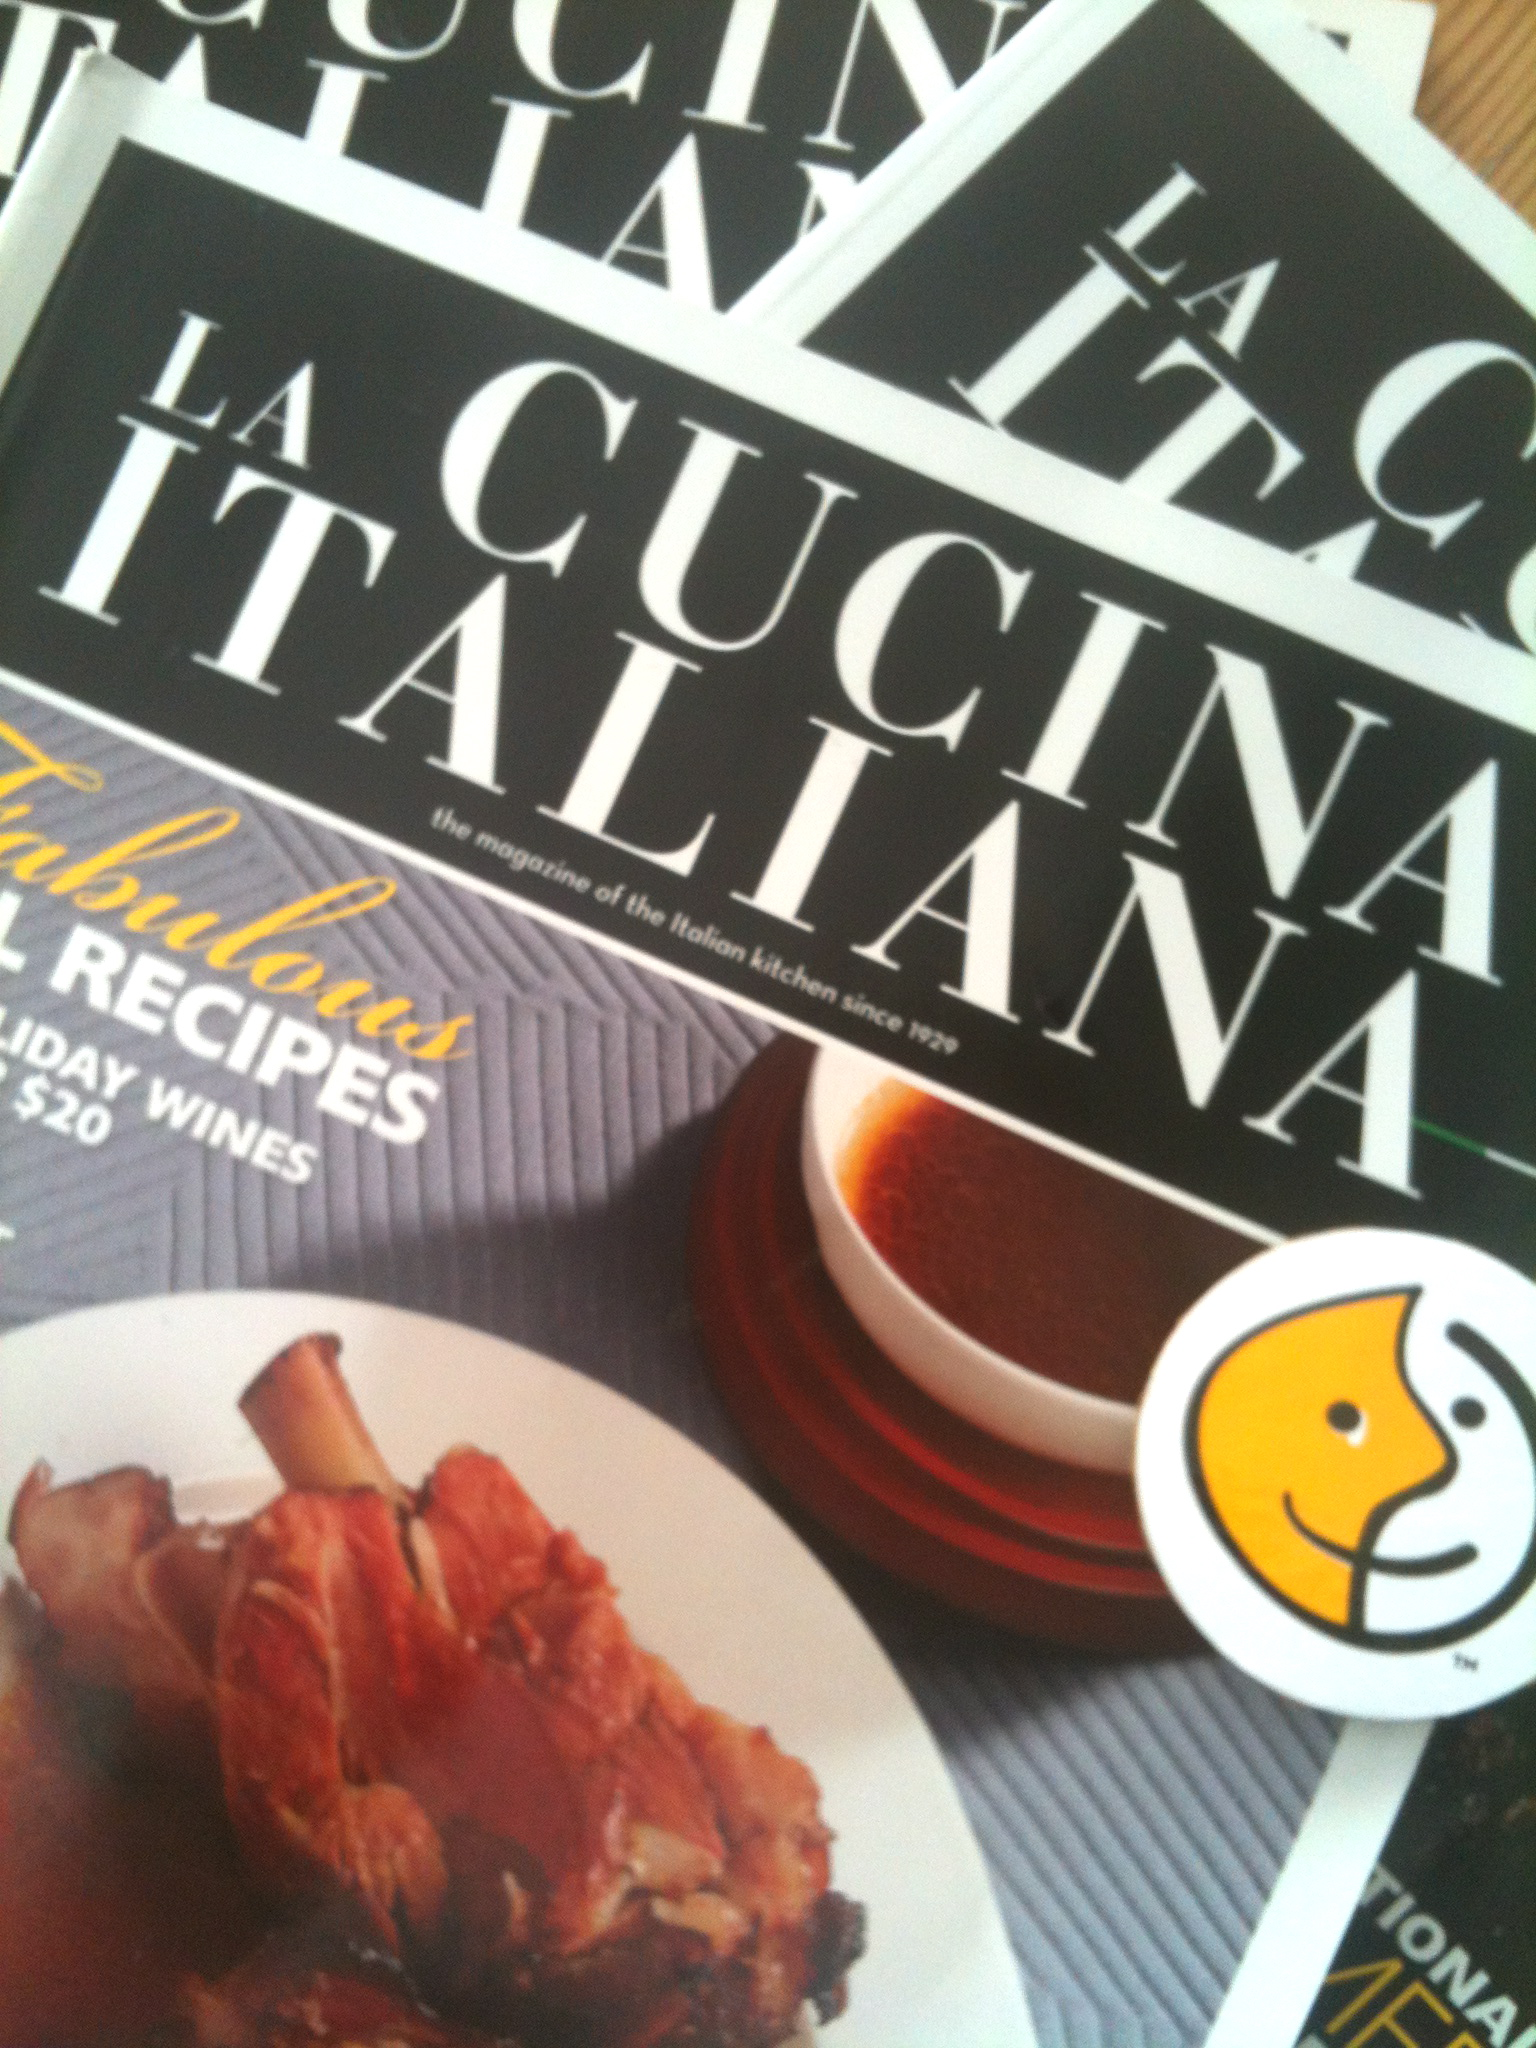 """Swipp La Cucina Italiana"" by Swipp Inc on Flickr (CC BY-SA 2.0)"